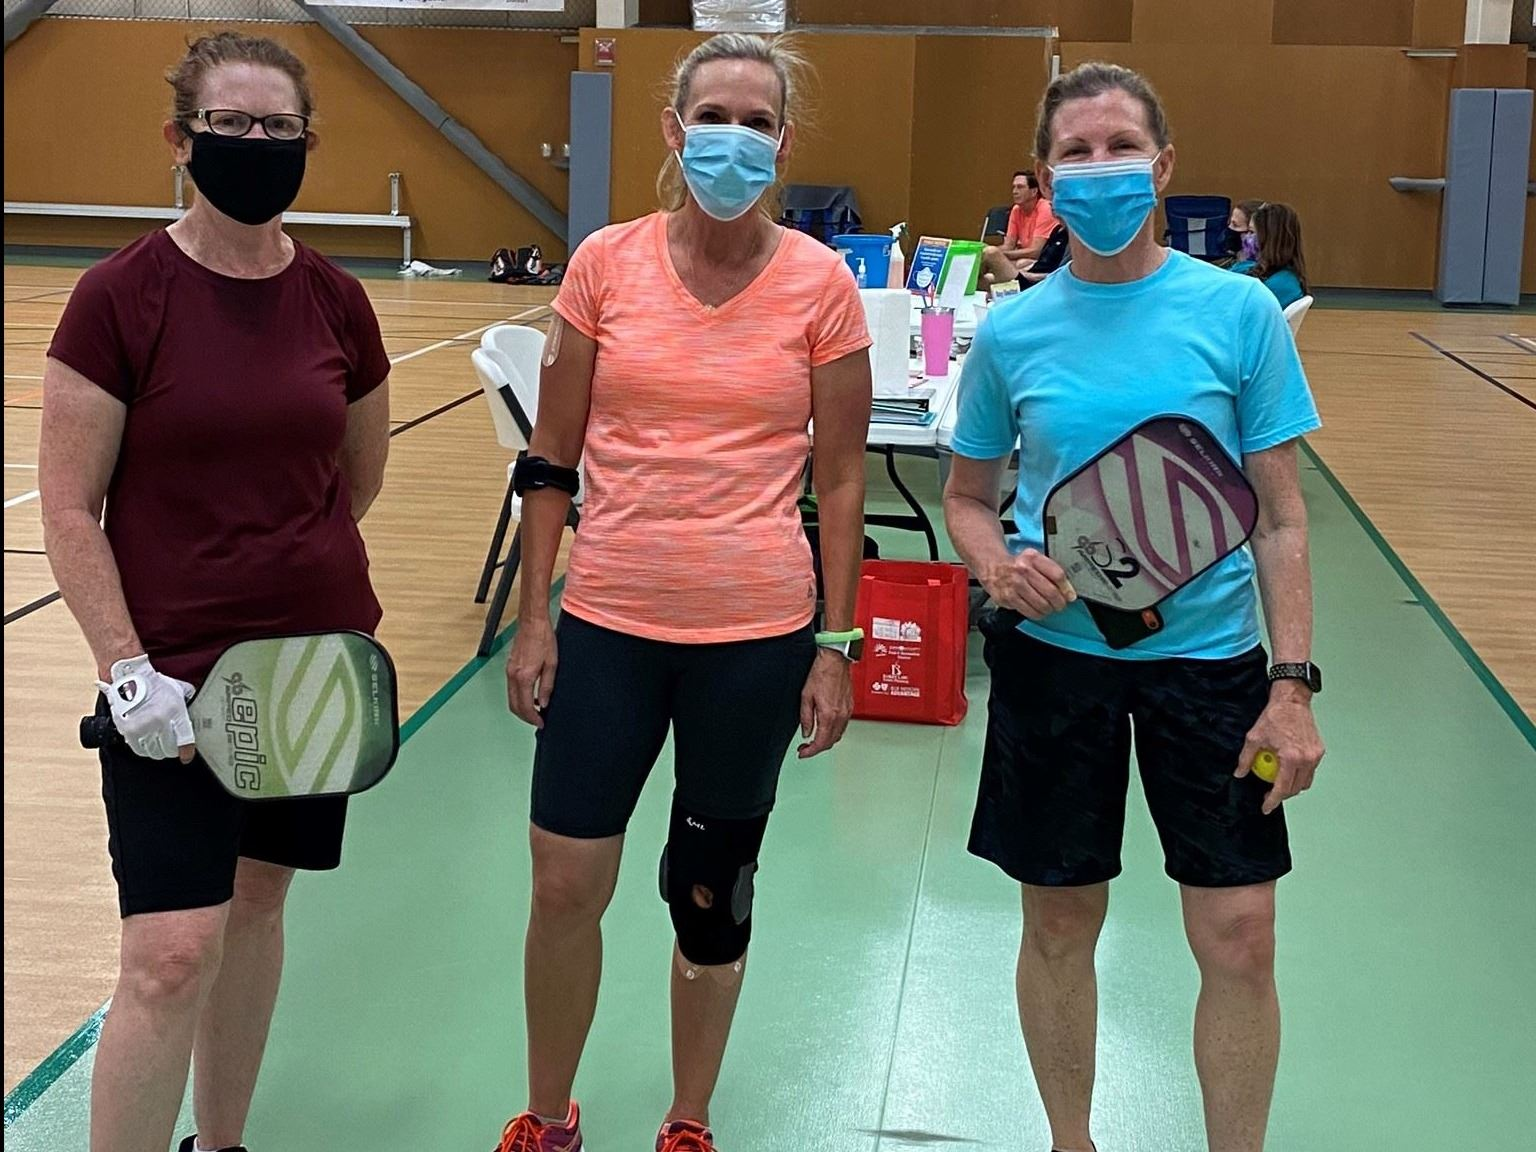 Masked pickleball players wait for match at tournament